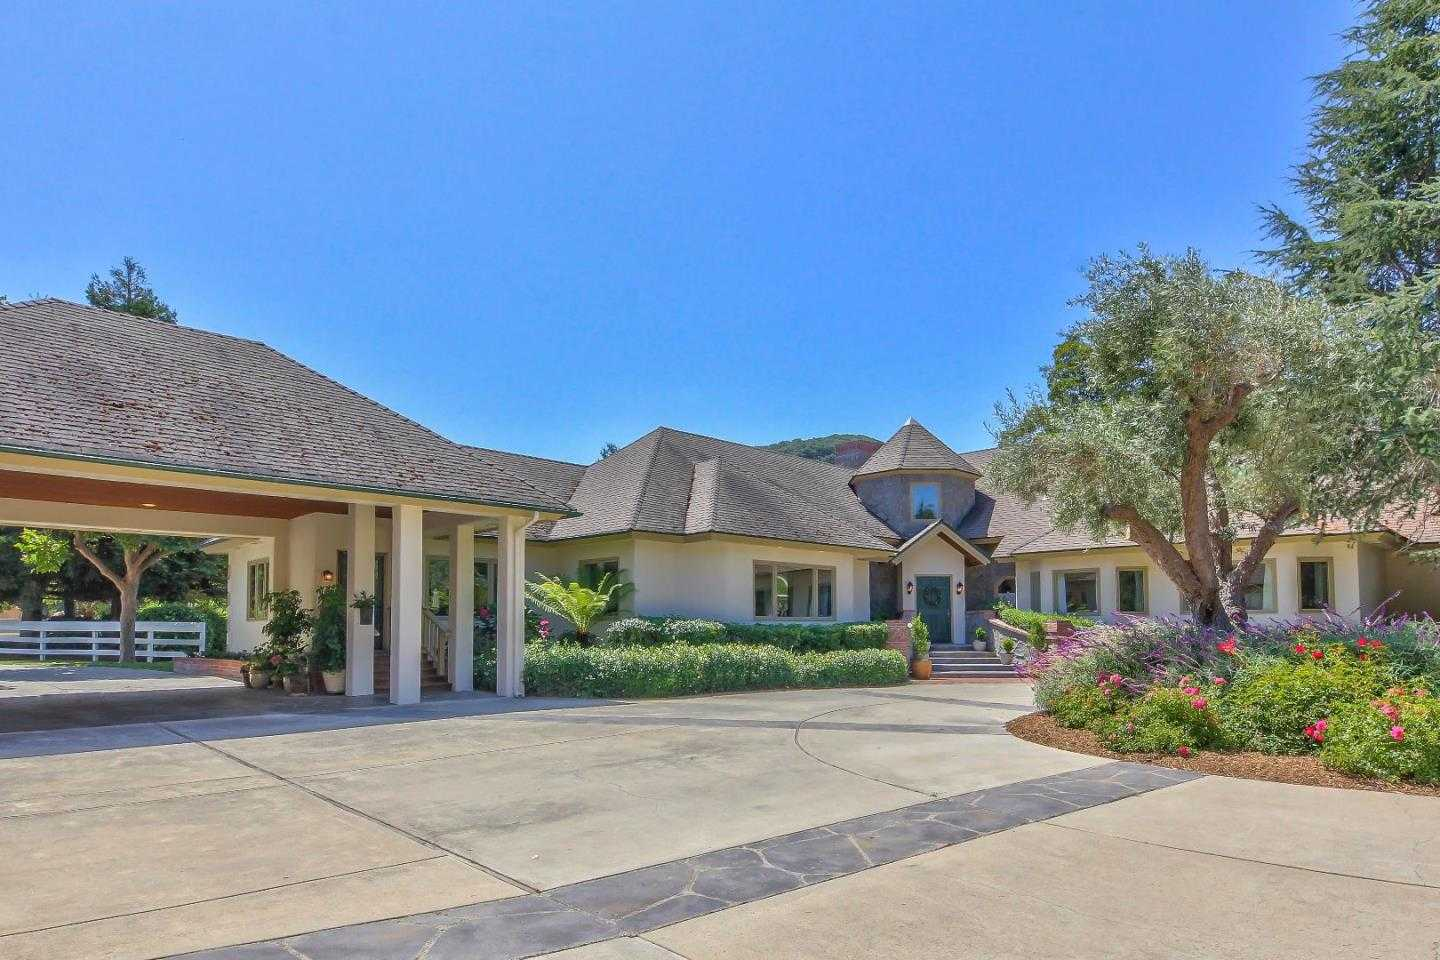 $2,495,000 - 4Br/3Ba -  for Sale in Salinas